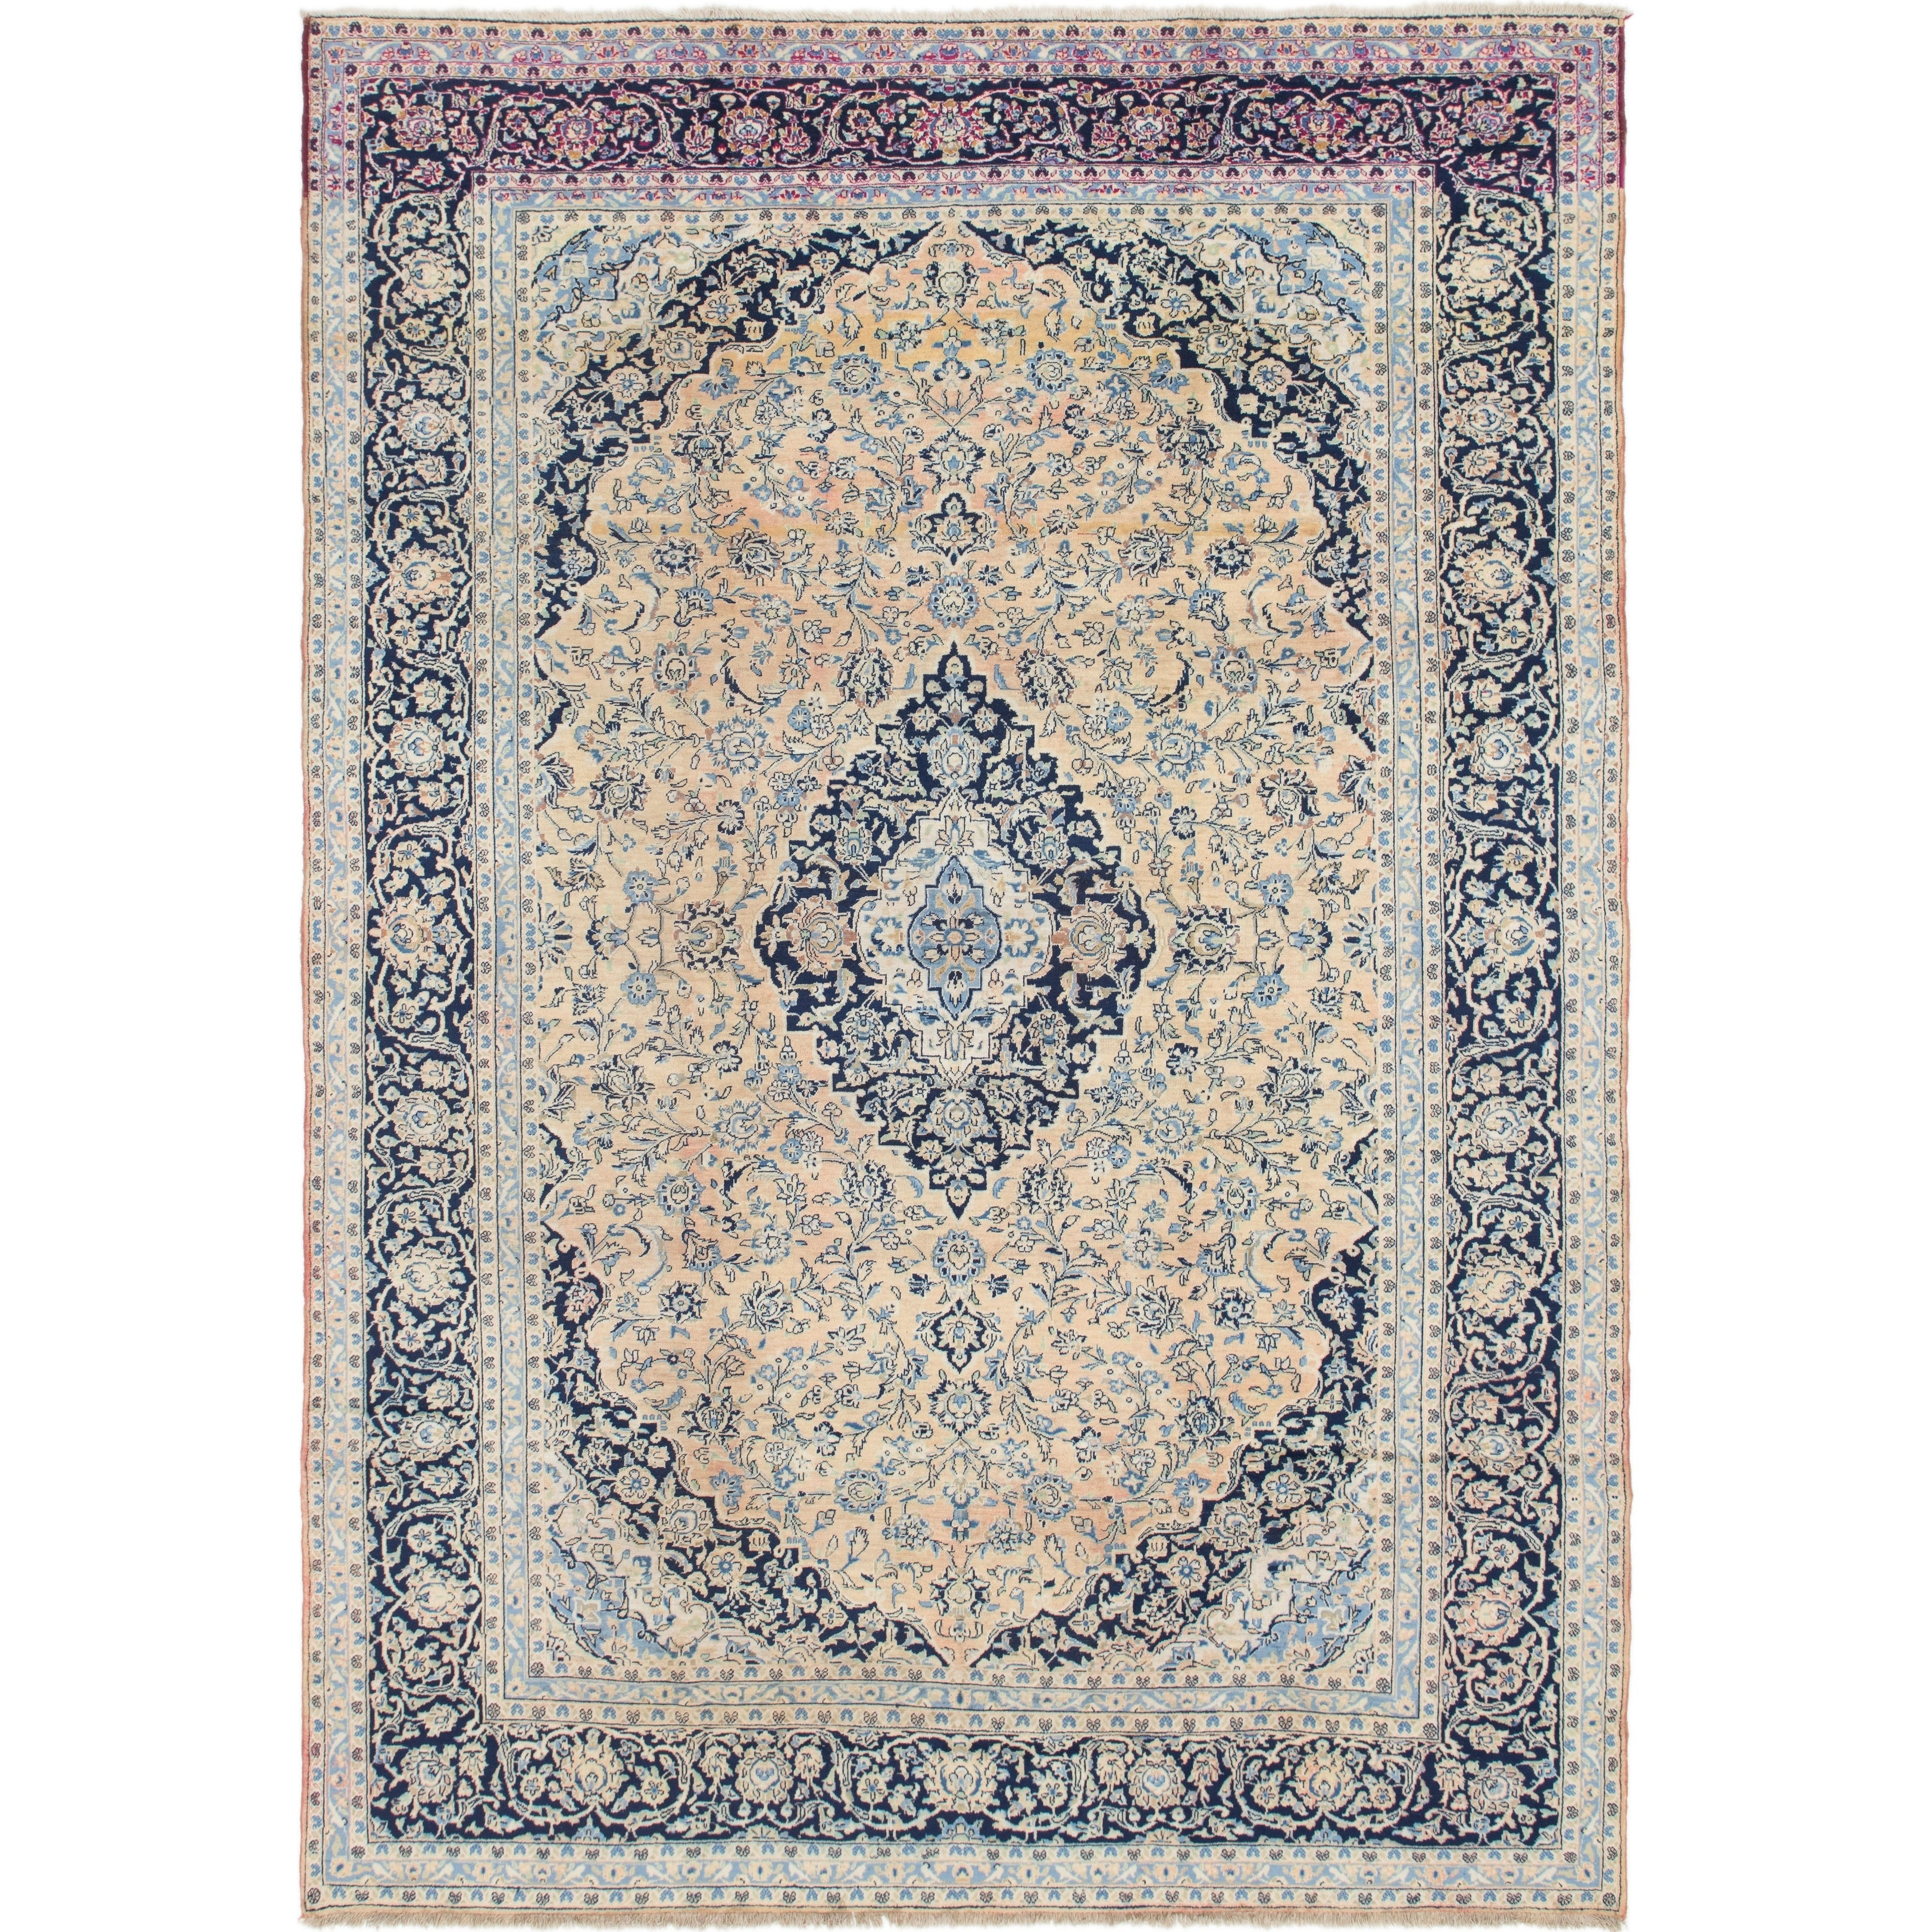 Hand Knotted Kashan Semi Antique Wool Area Rug - 9 9 x 13 10 (peach - 9 9 x 13 10)